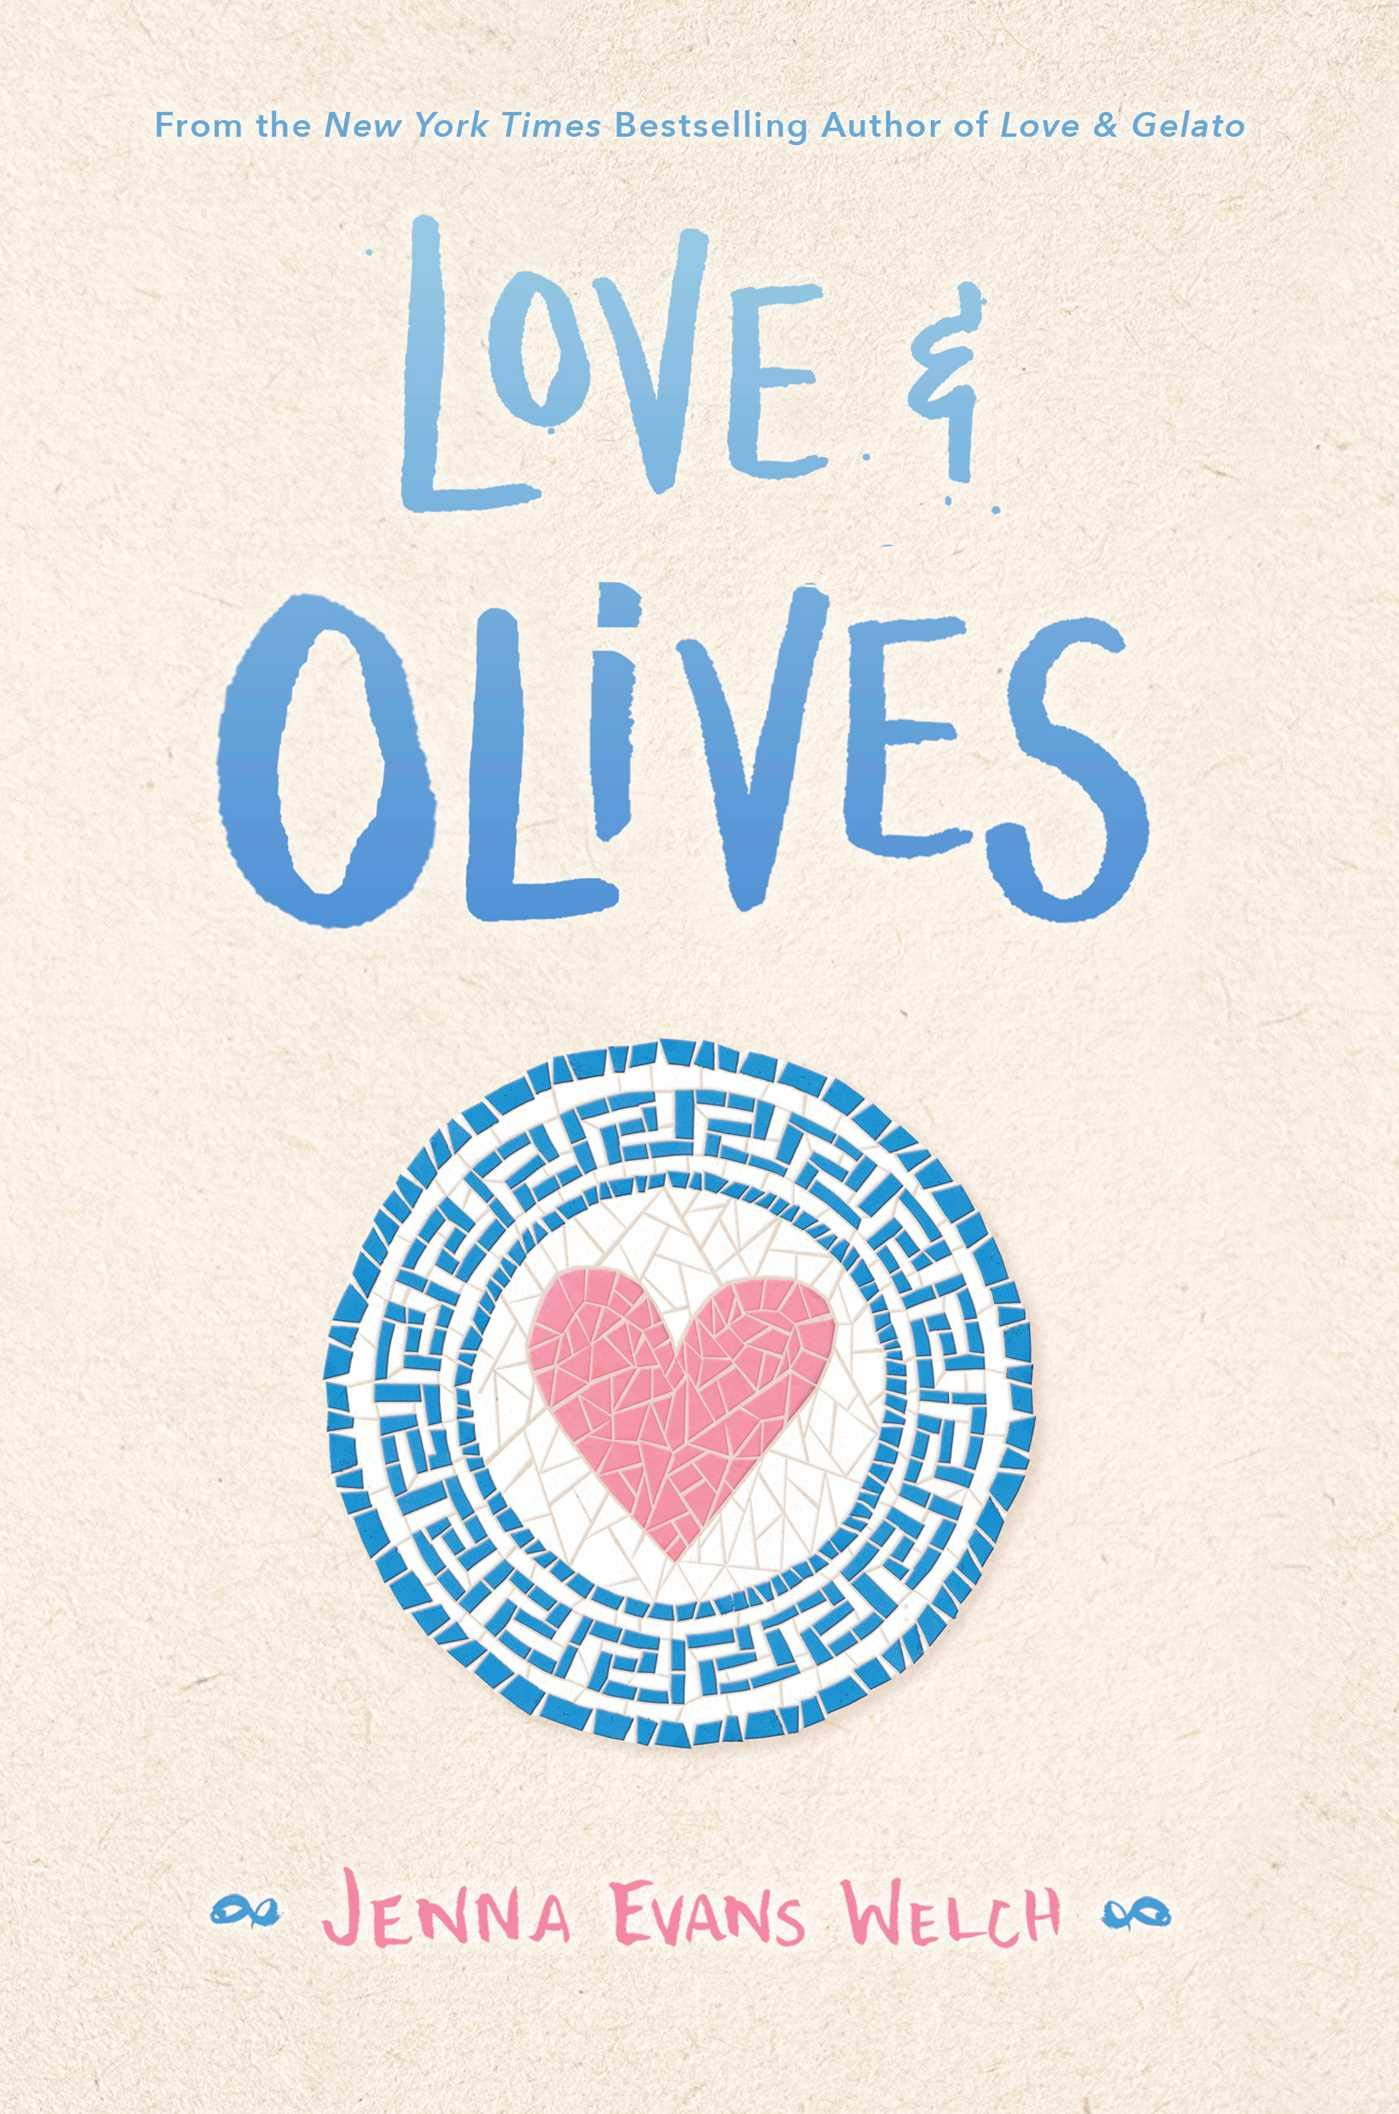 Amazon.com: Love & Olives (9781534448834): Welch, Jenna Evans: Books